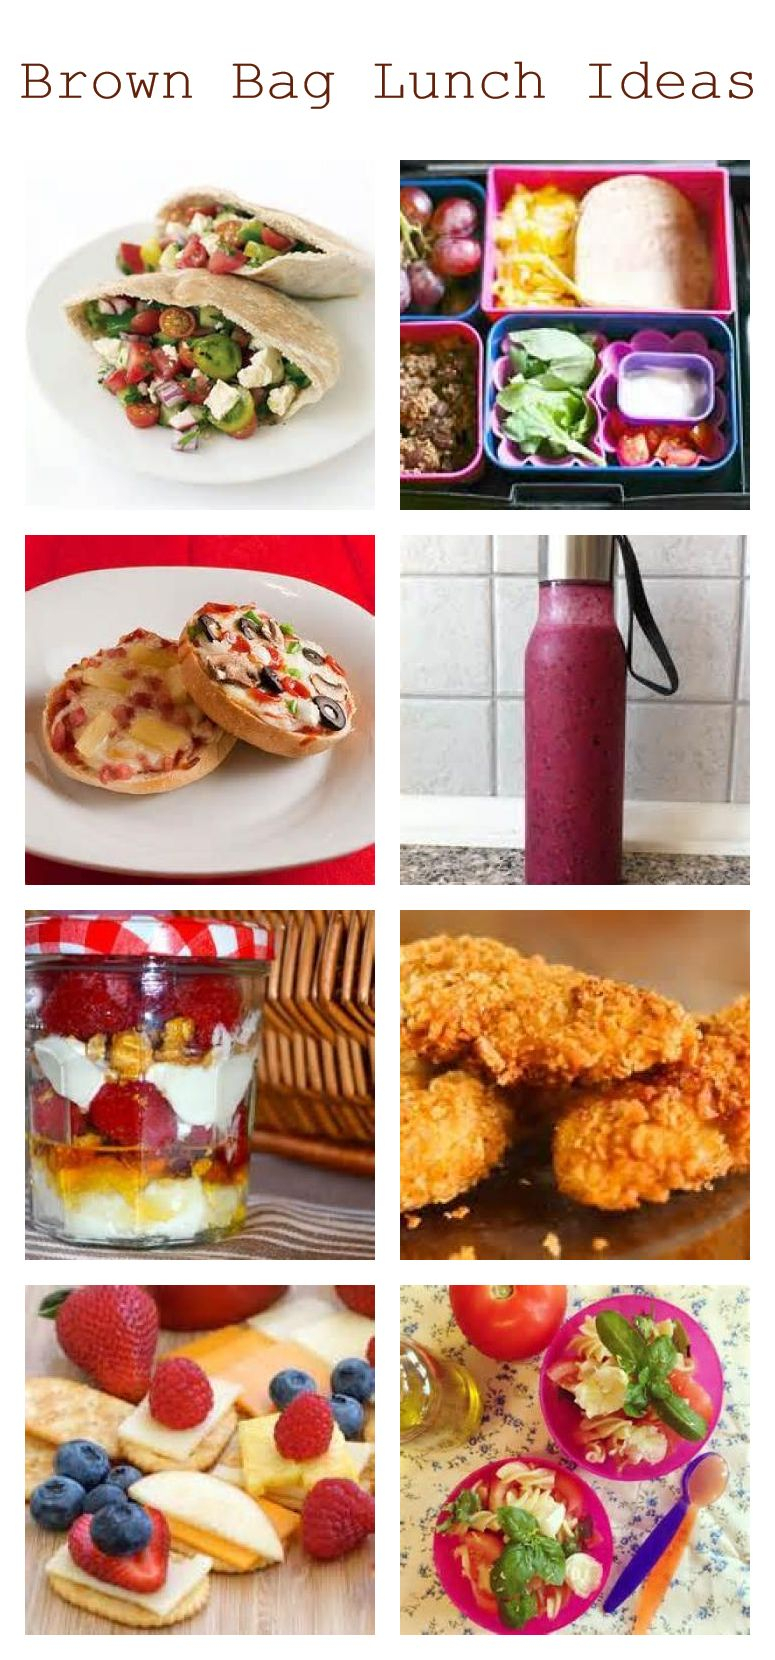 brown bag lunch ideas for kids and teens | ♥ money saving ☛ diy